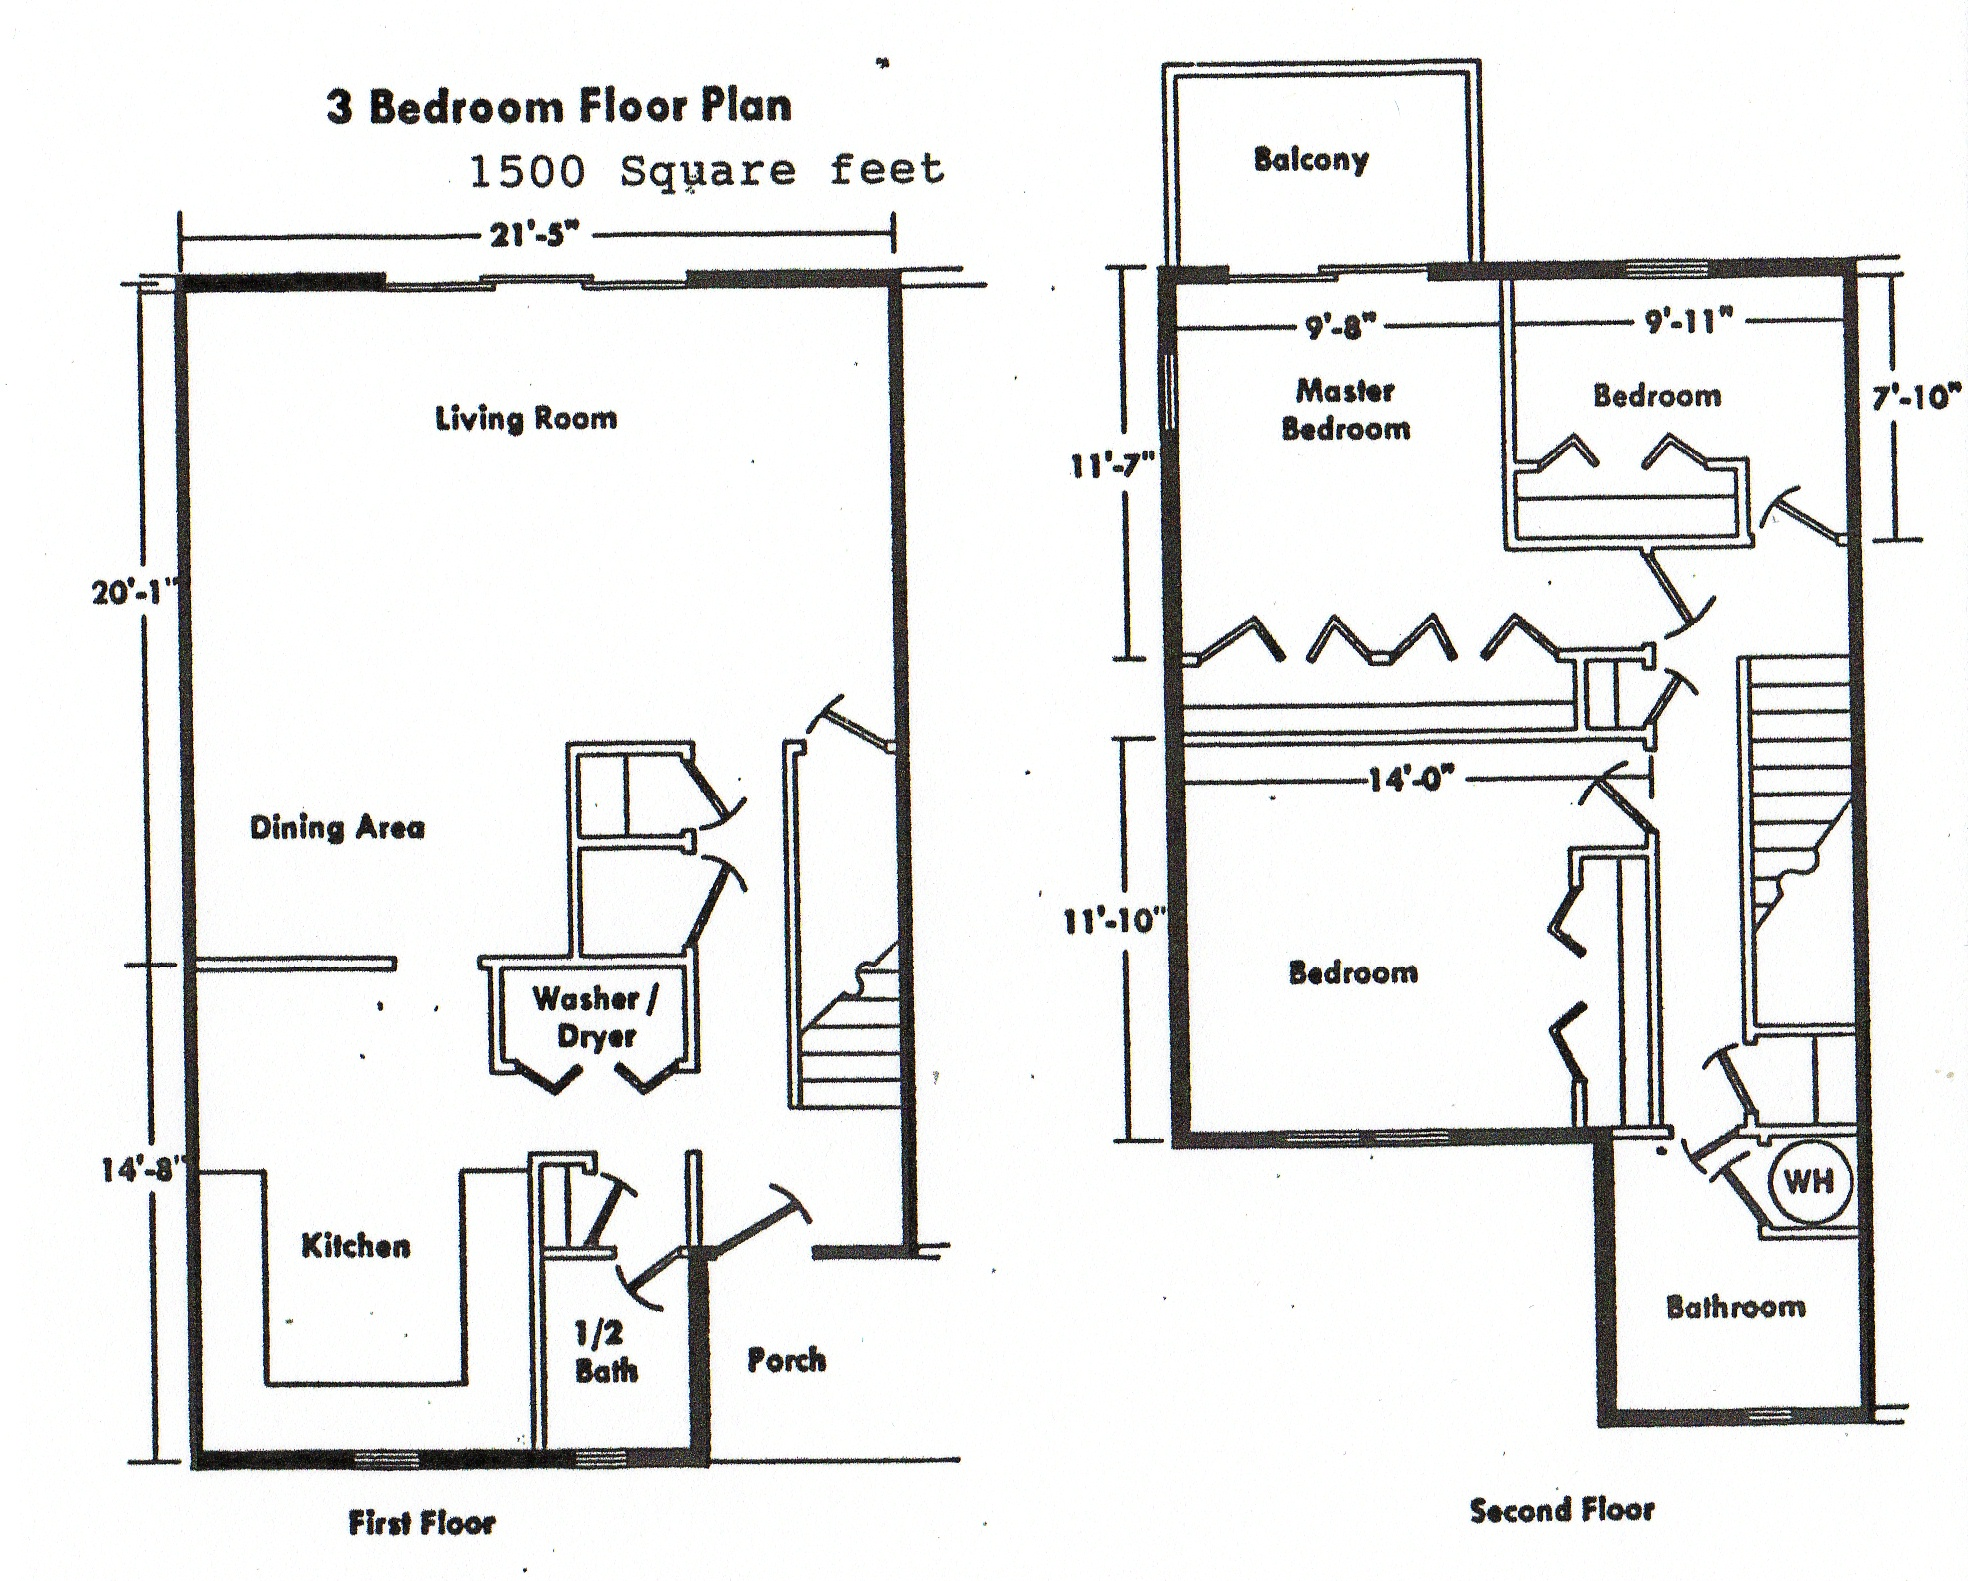 Home ideas for 3 bedroom floor plans